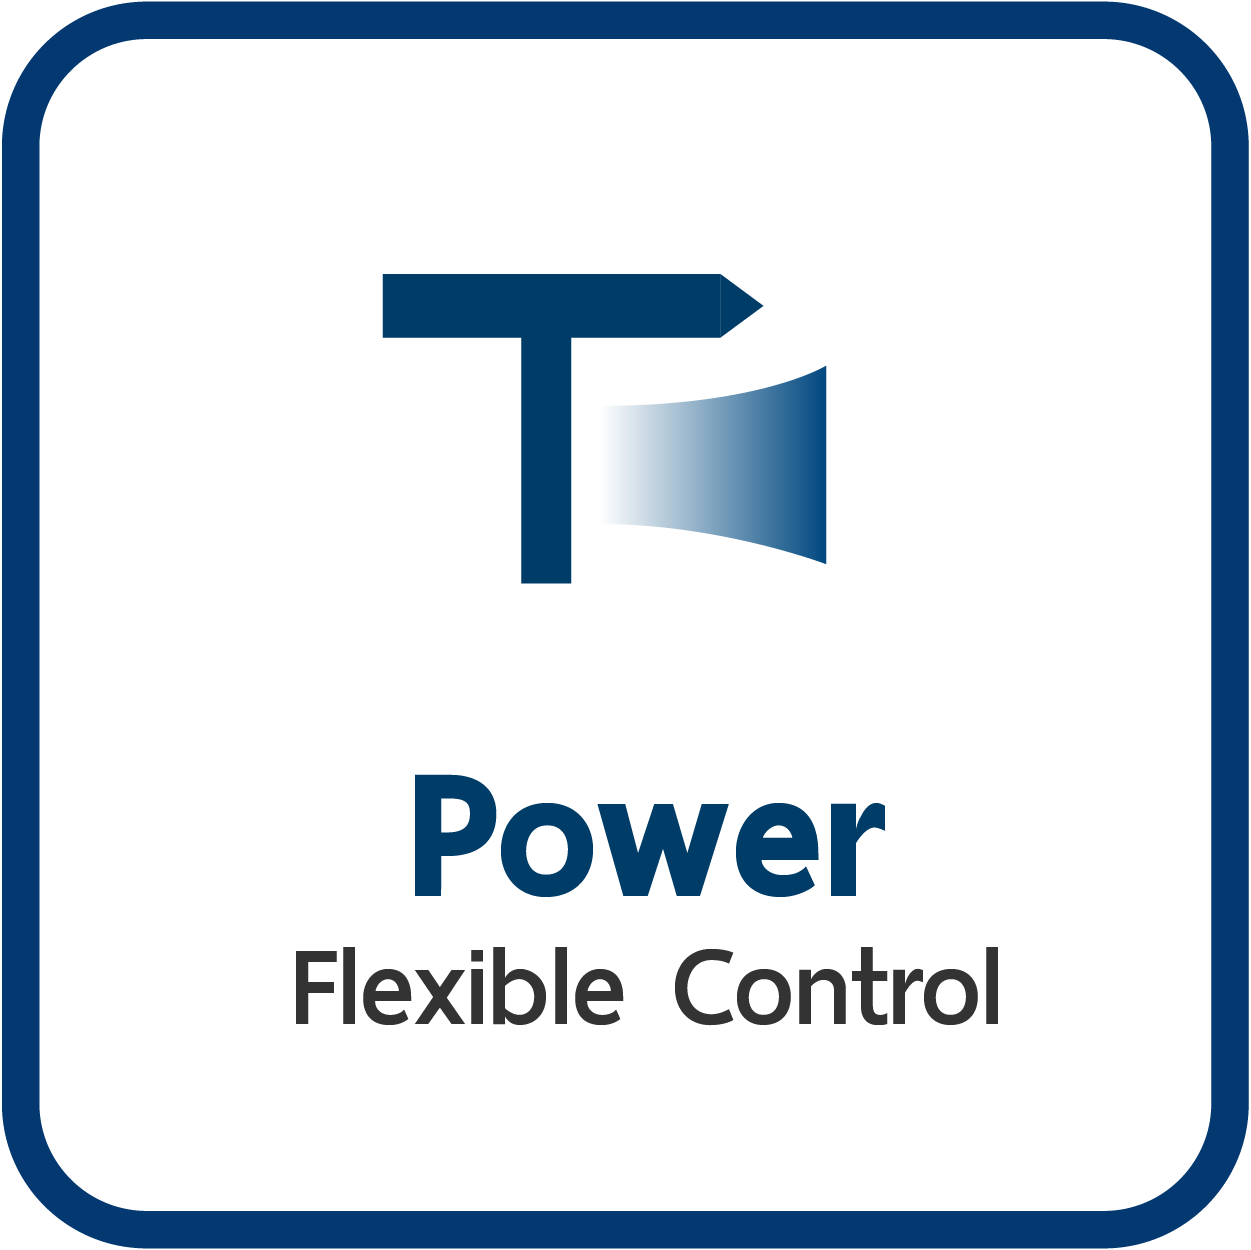 Power Flexible Control